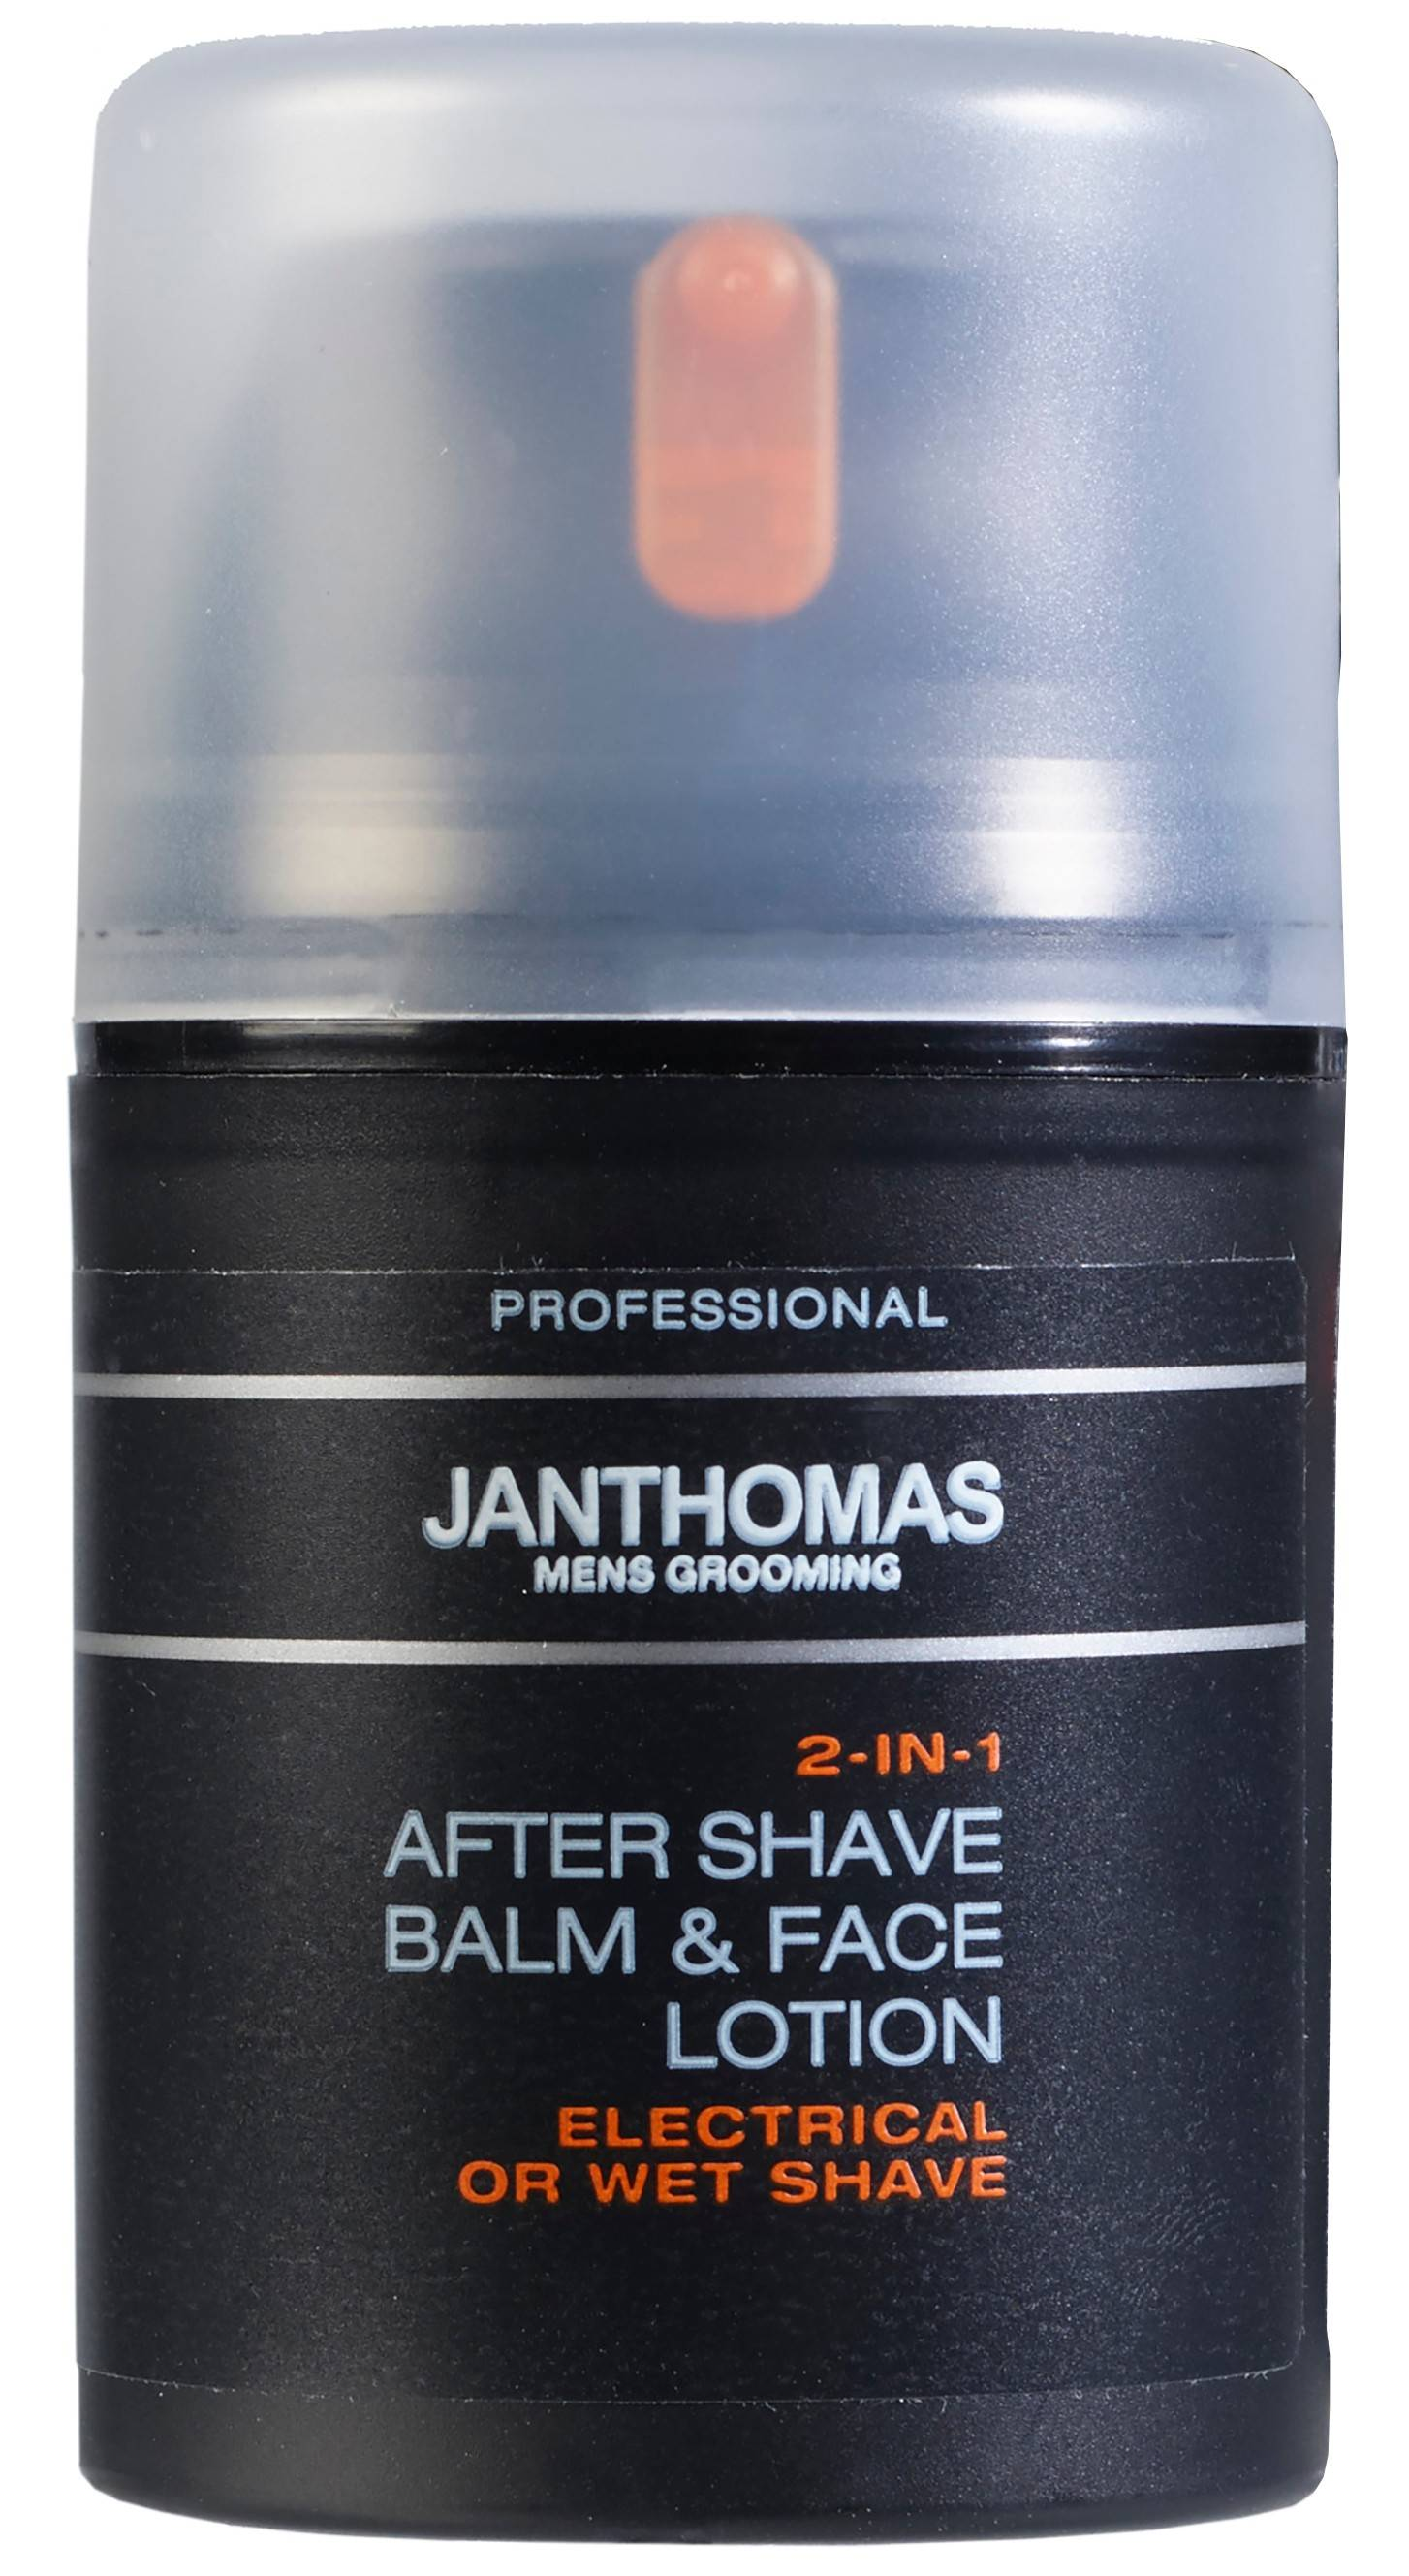 Jan Thomas Studio Styling Jan Thomas After Shave Balm & Face Lotion 946171